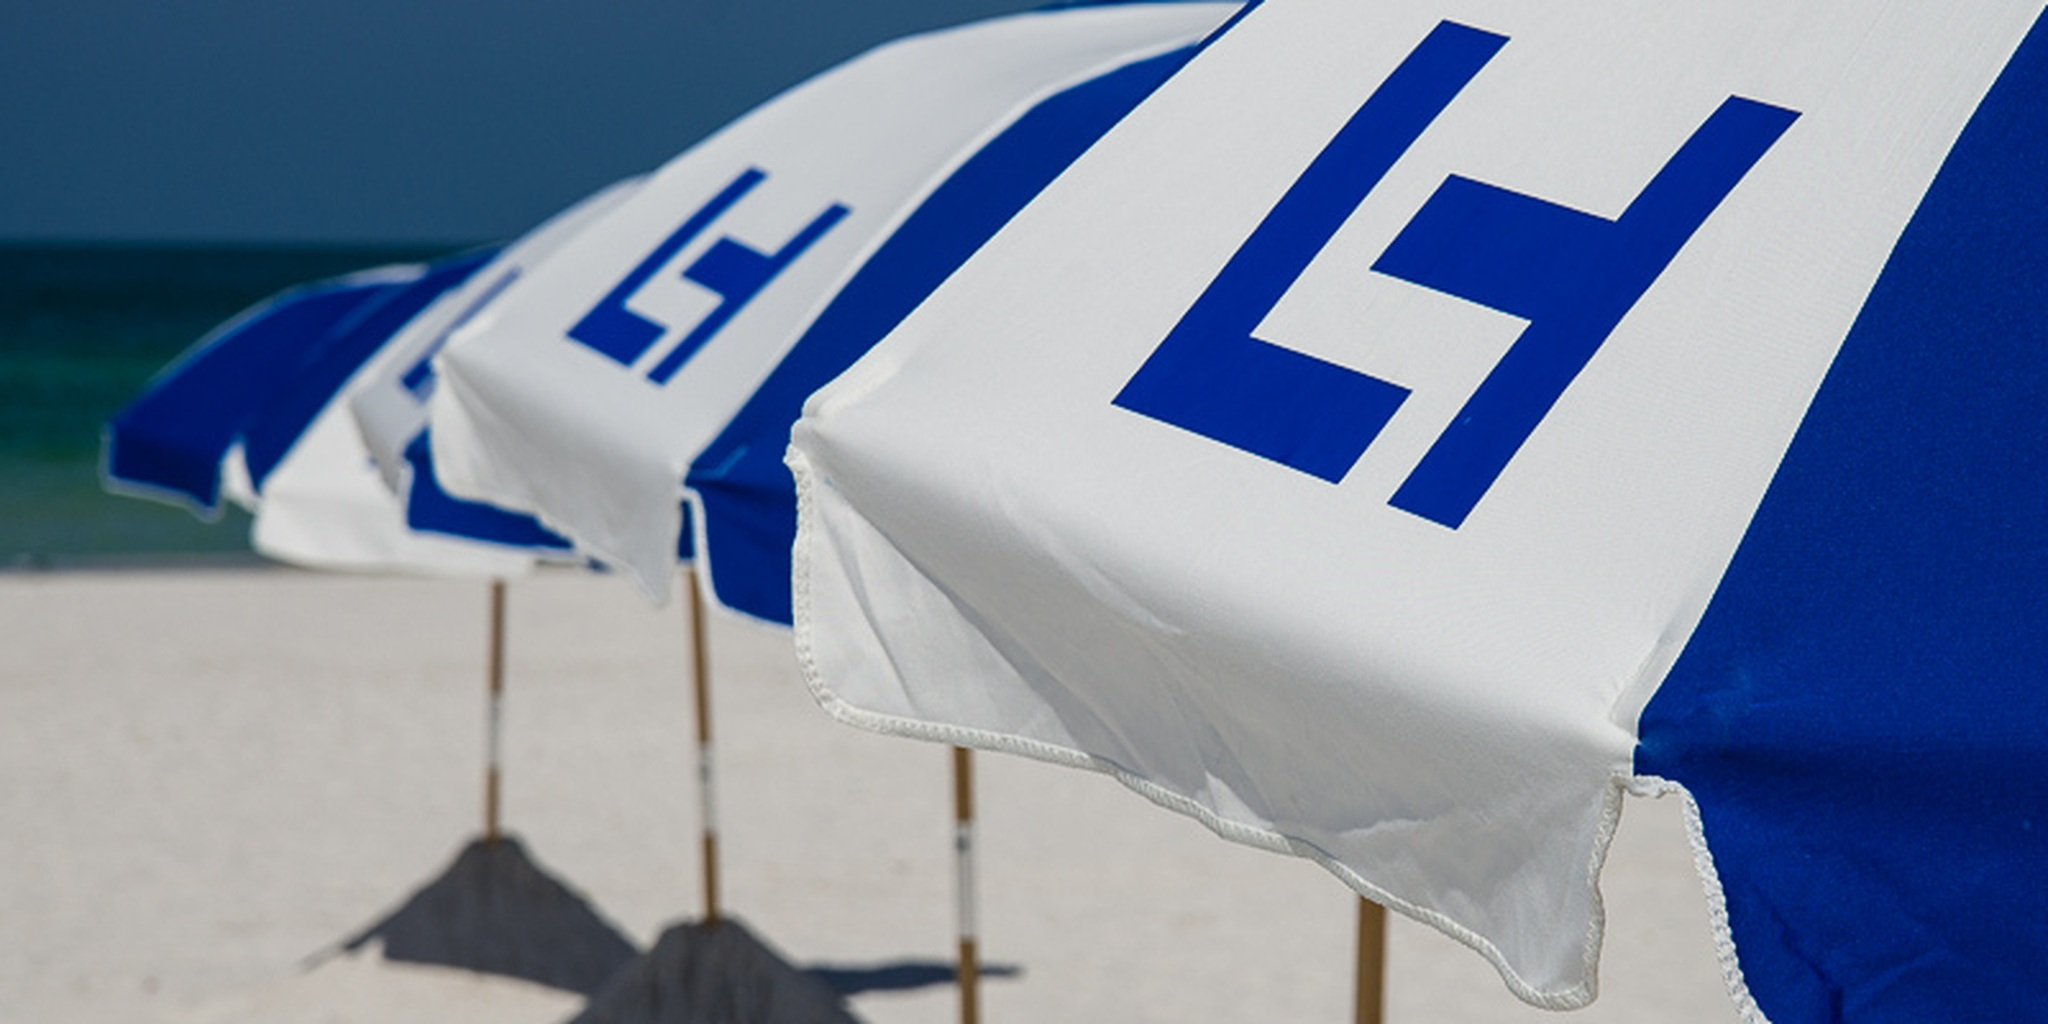 All sizes | Loews Hotel rebranded their beach umbrellas at the Don Cesar | Flickr - Photo Sharing!